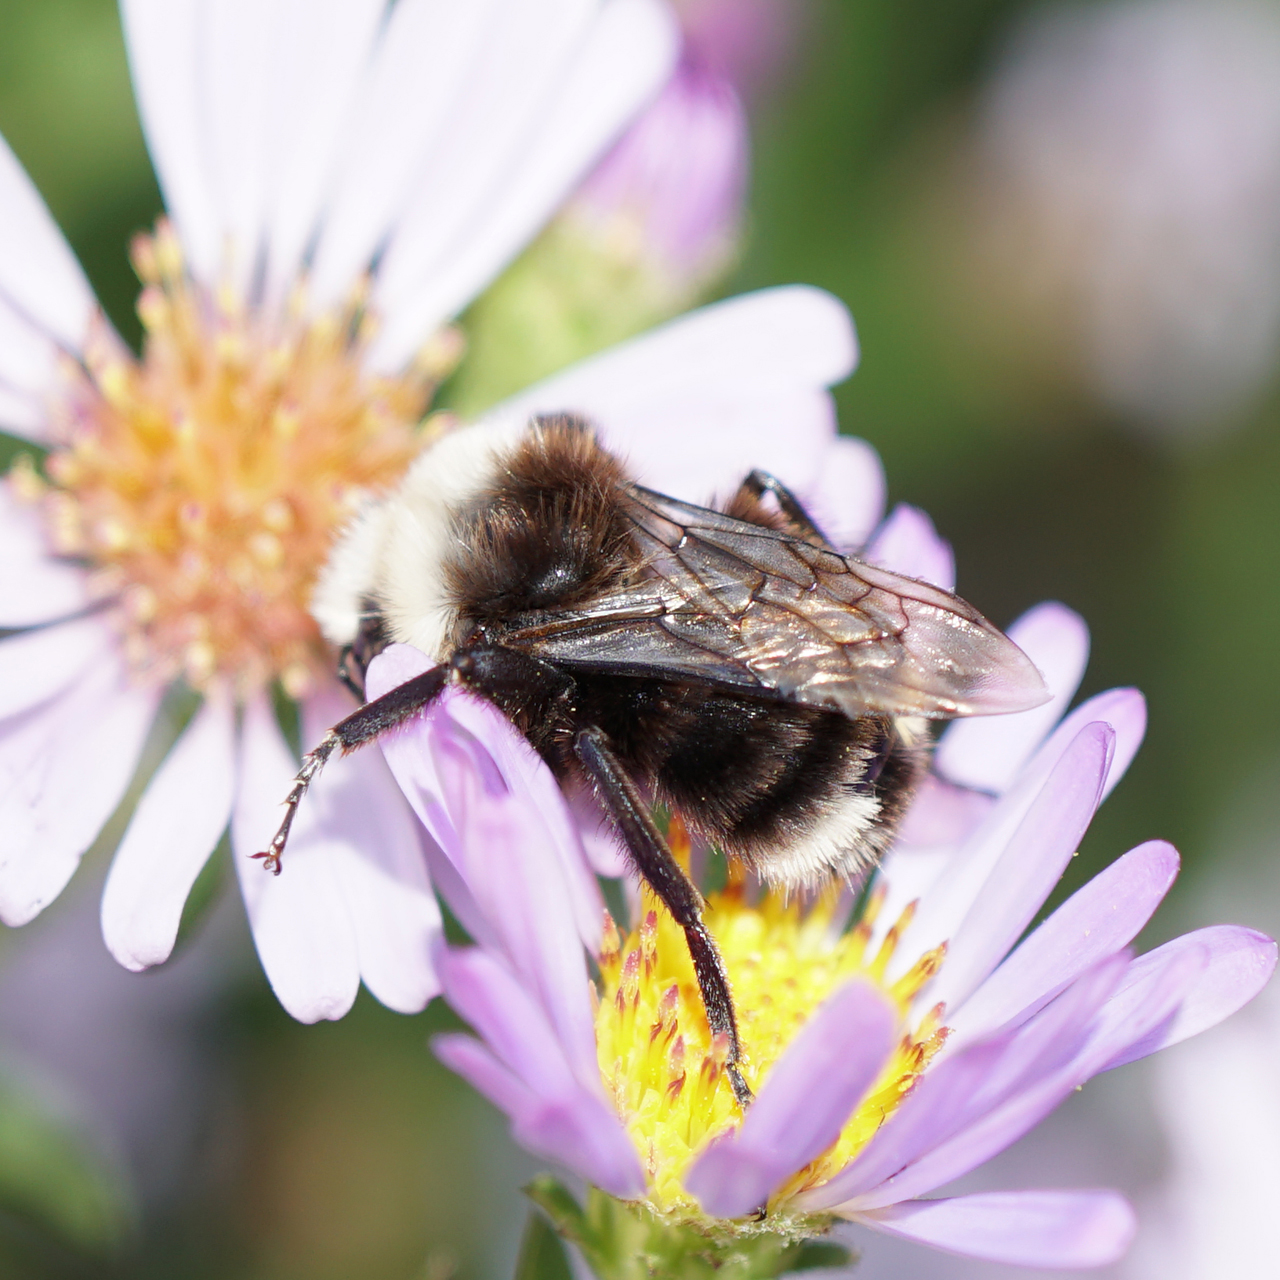 Photo of a male Yellow-faced Bumble Bee at rest on a aster flower